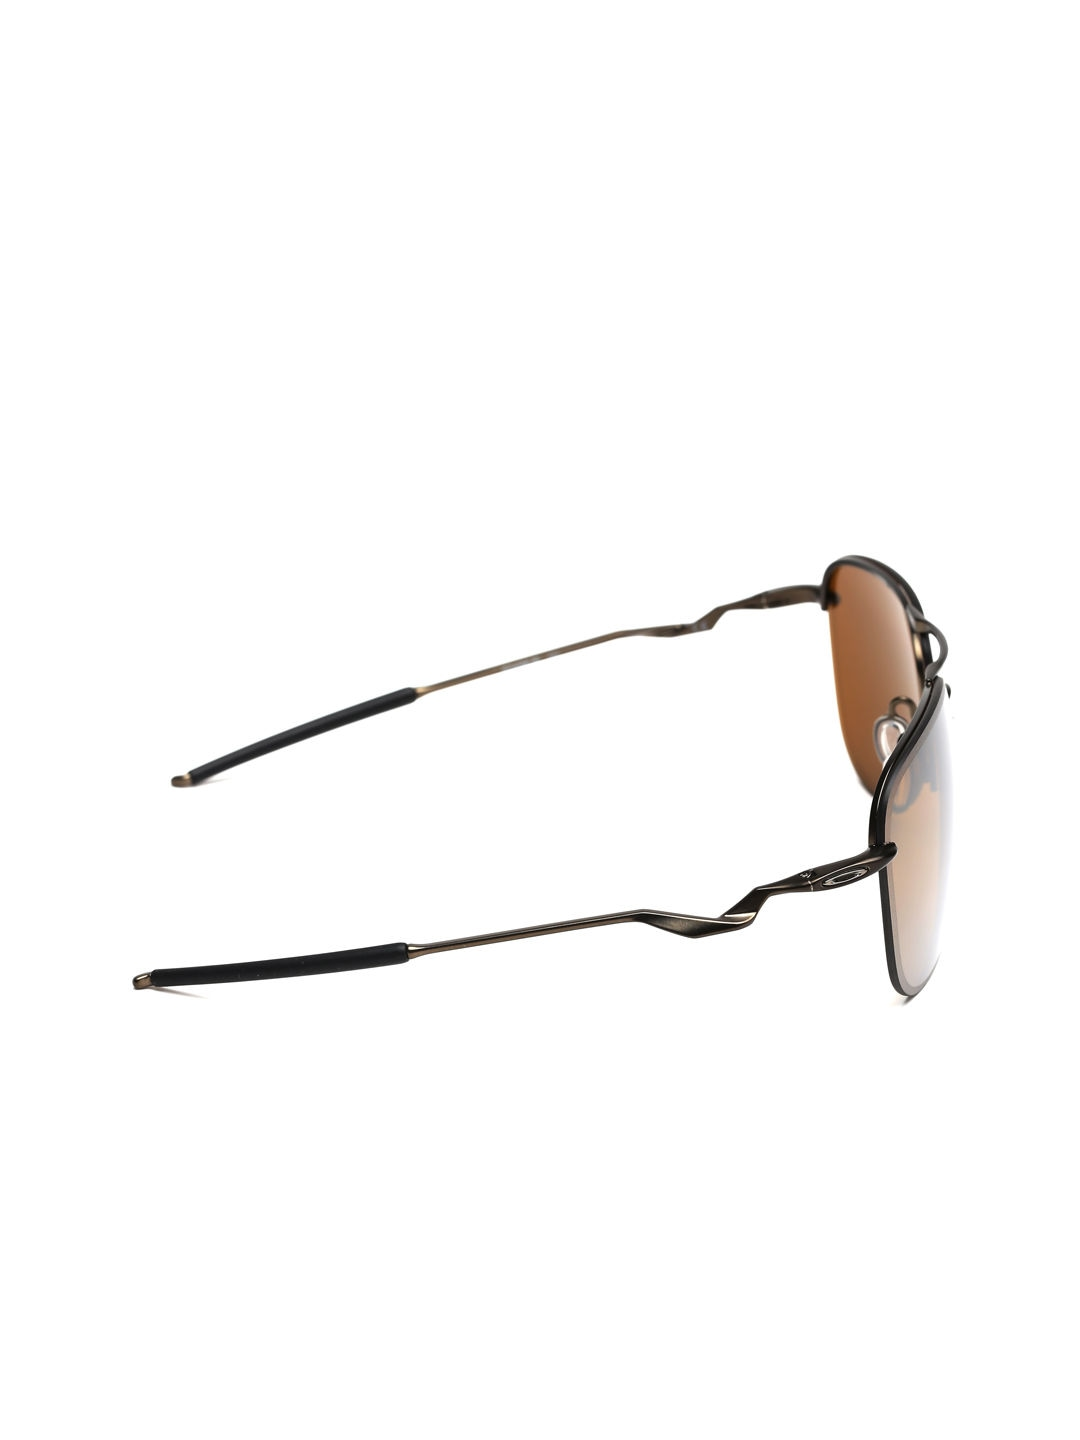 Ucb Stylish Aviator Sunglasses | Louisiana Bucket Brigade